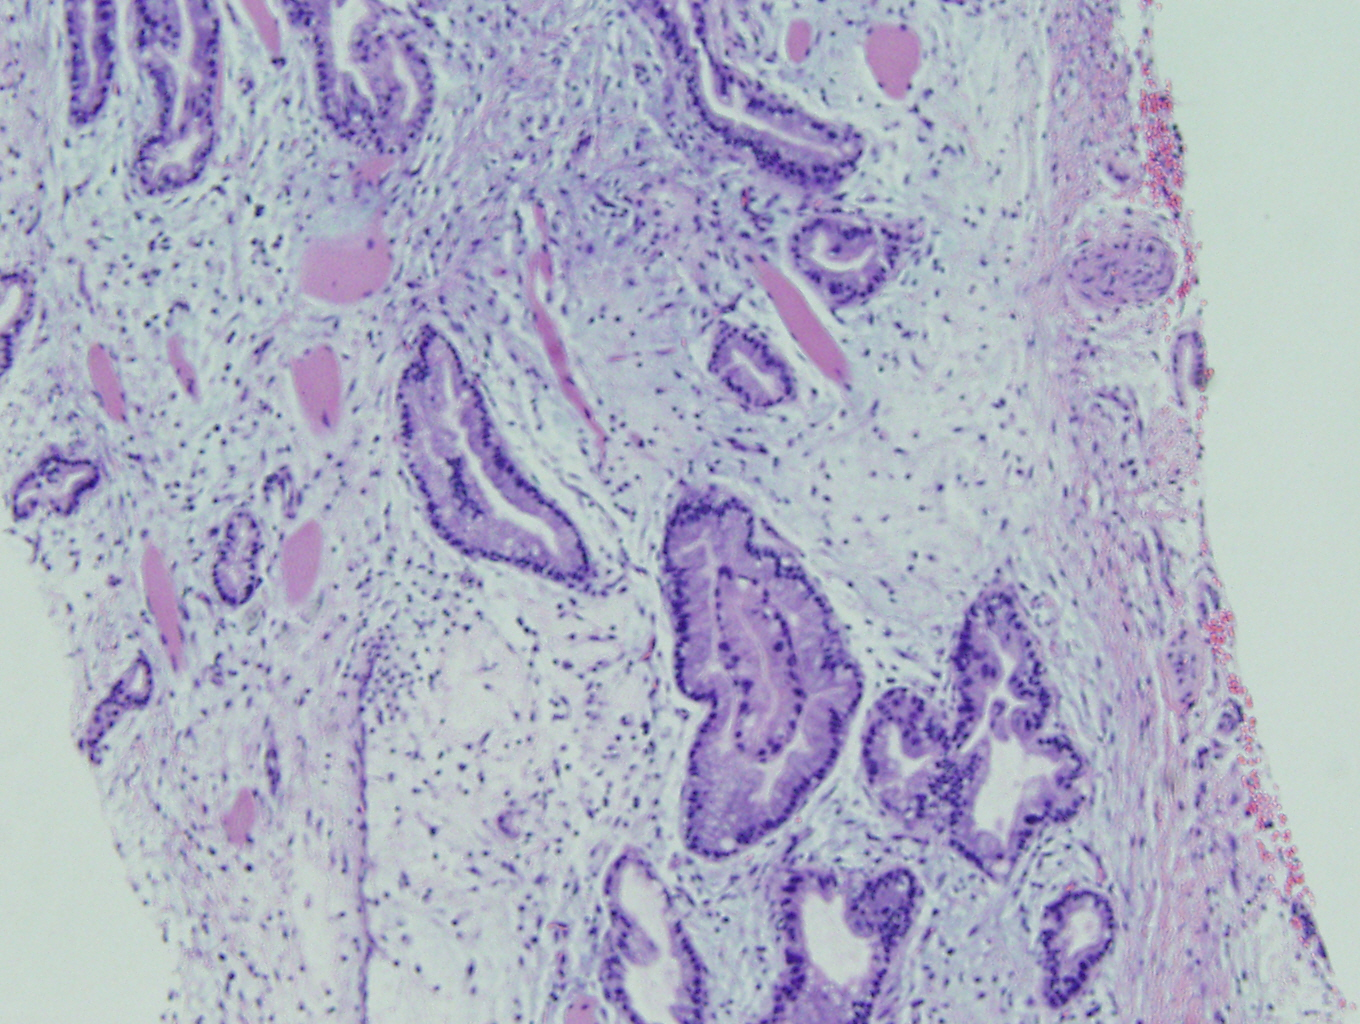 Case of the Month, Mar. 2013: Figure 4